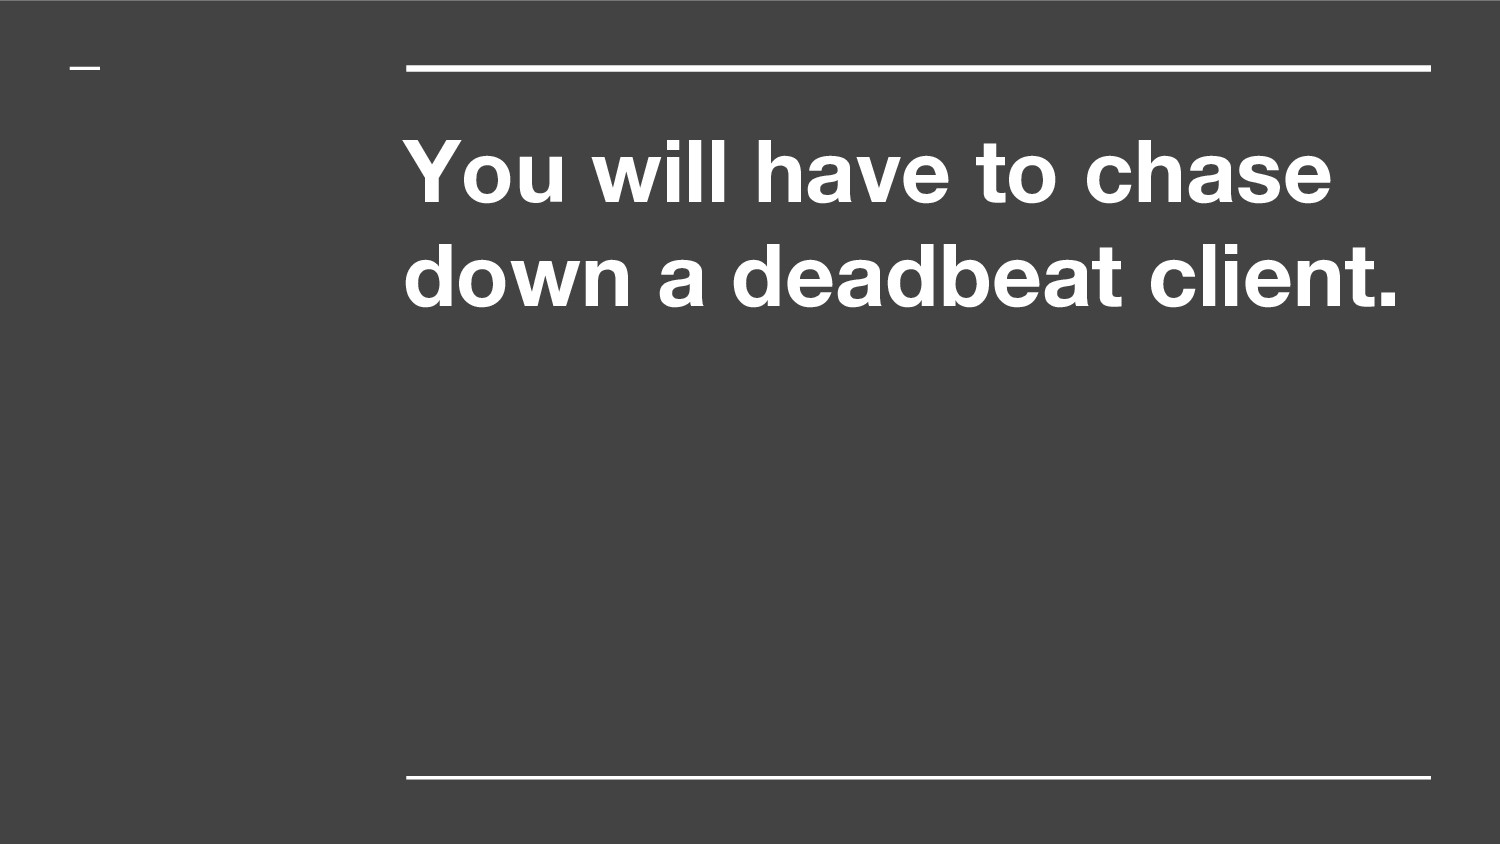 You will have to chase down a deadbeat client.